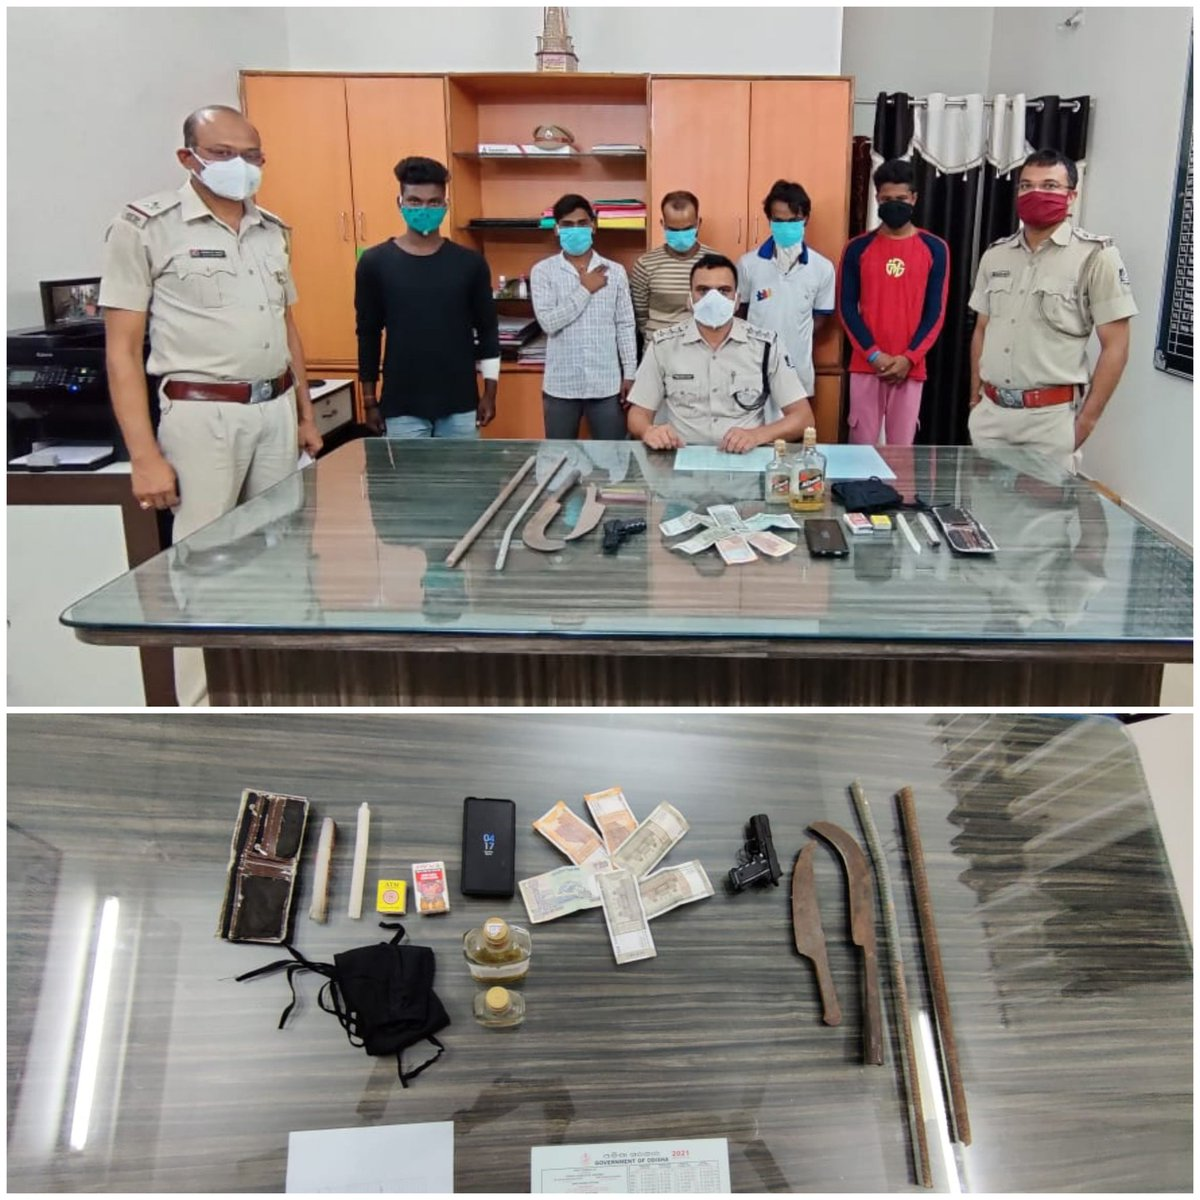 Rajgangpur Police apprehended 5 persons while preparing to commit dacoity. One mobile, cash of Rs.2,000, one money purse,two iron Bhujali,one toy pistol,two iron rods along with other incriminating articles have been seized. PS case No. 153 u/s 399/402 IPC was registered. https://t.co/Hie1XH4nwz